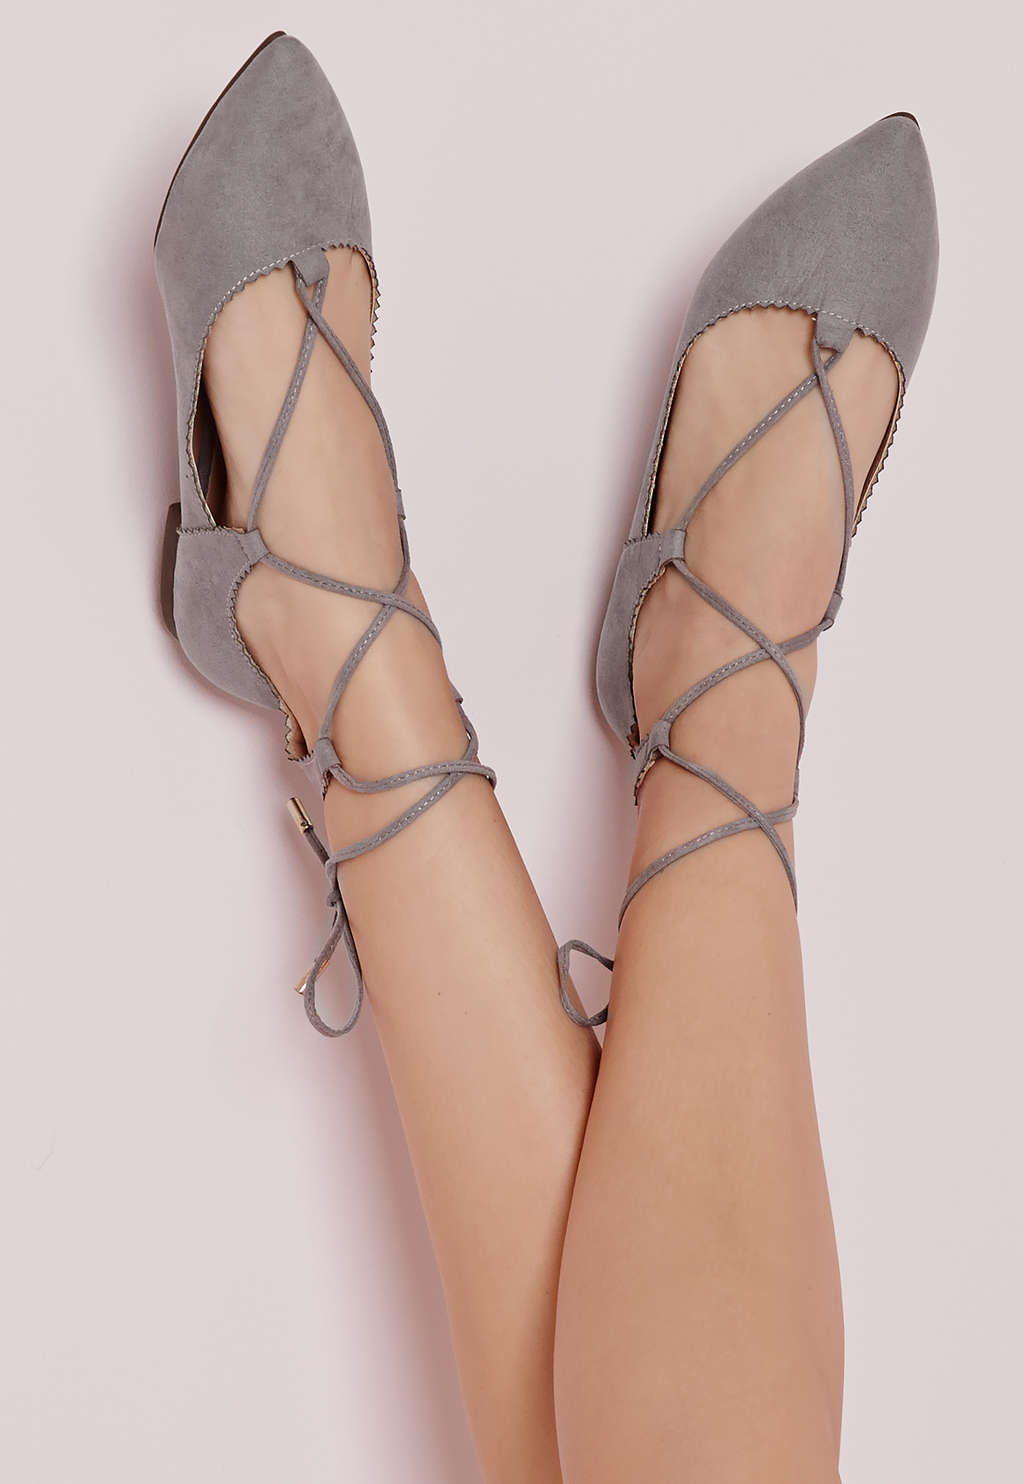 Scallop Edge Lace Up Flats Grey, Grey - predominant colour: mid grey; occasions: casual, creative work; heel height: flat; ankle detail: ankle tie; toe: pointed toe; style: ballerinas / pumps; finish: plain; pattern: plain; material: faux suede; season: s/s 2016; wardrobe: basic